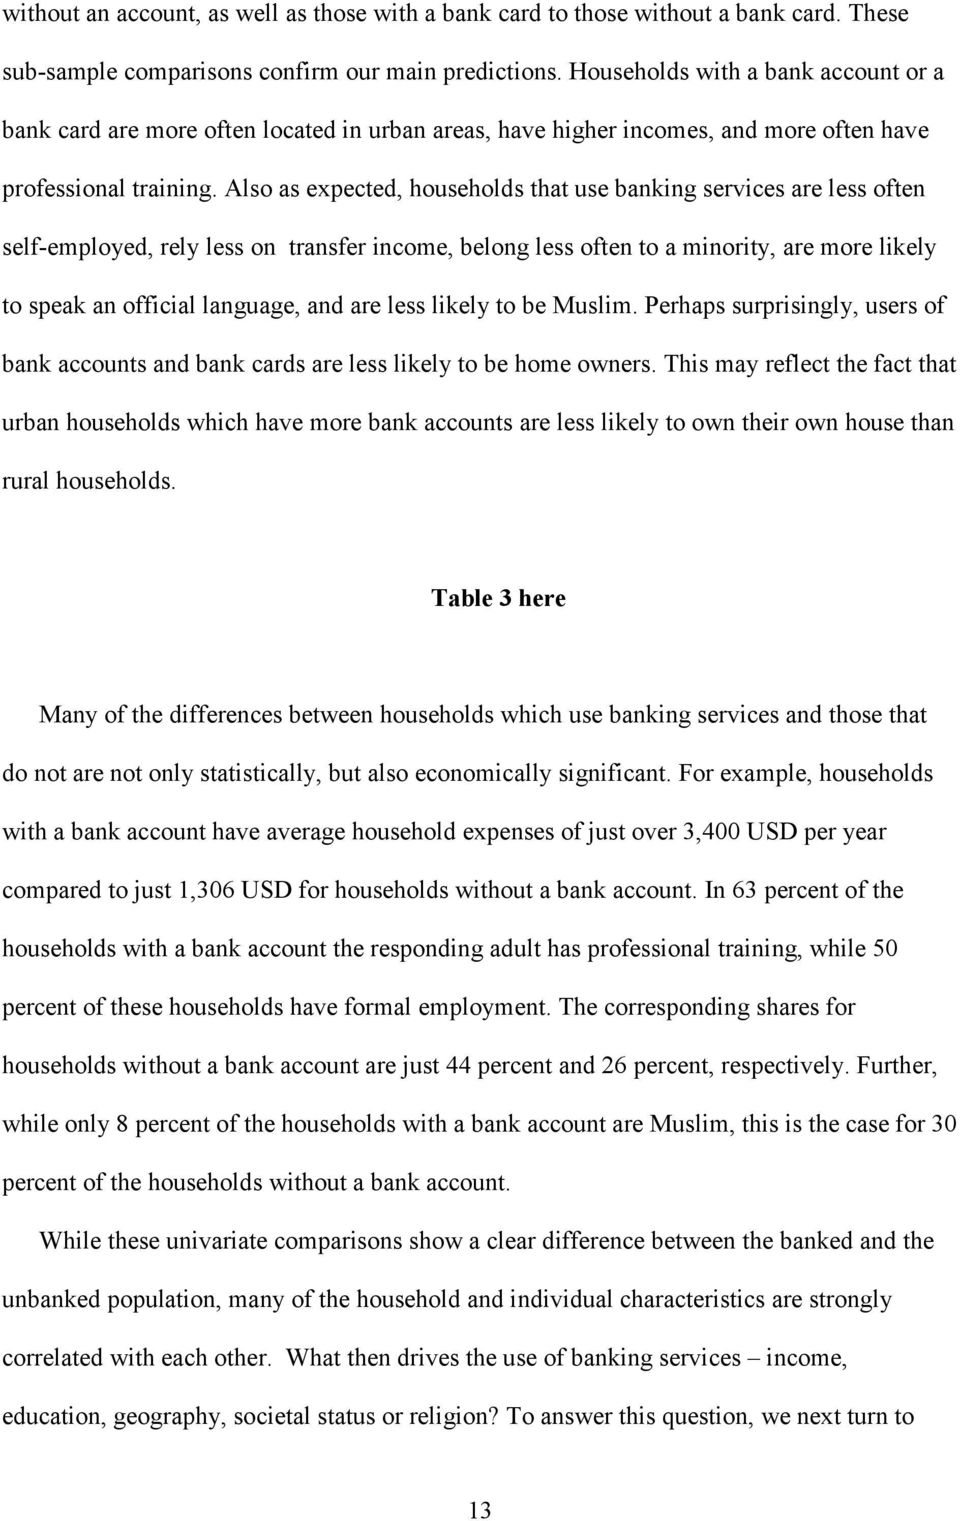 Also as expected, households that use banking services are less often self-employed, rely less on transfer income, belong less often to a minority, are more likely to speak an official language, and